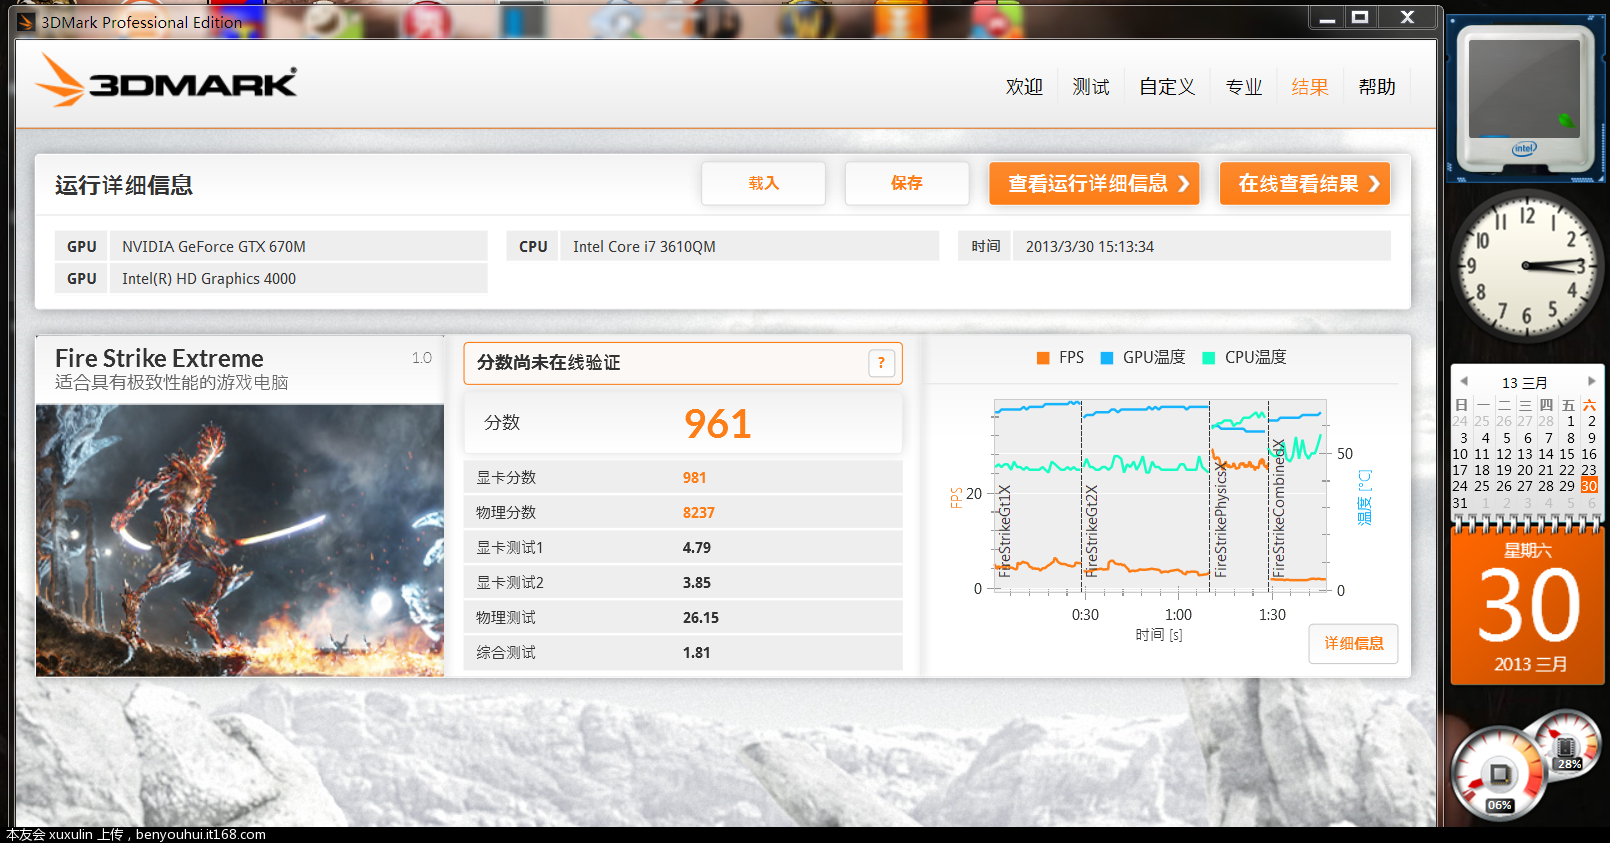 10-2 Fire Strike  Extreme测试结果.PNG